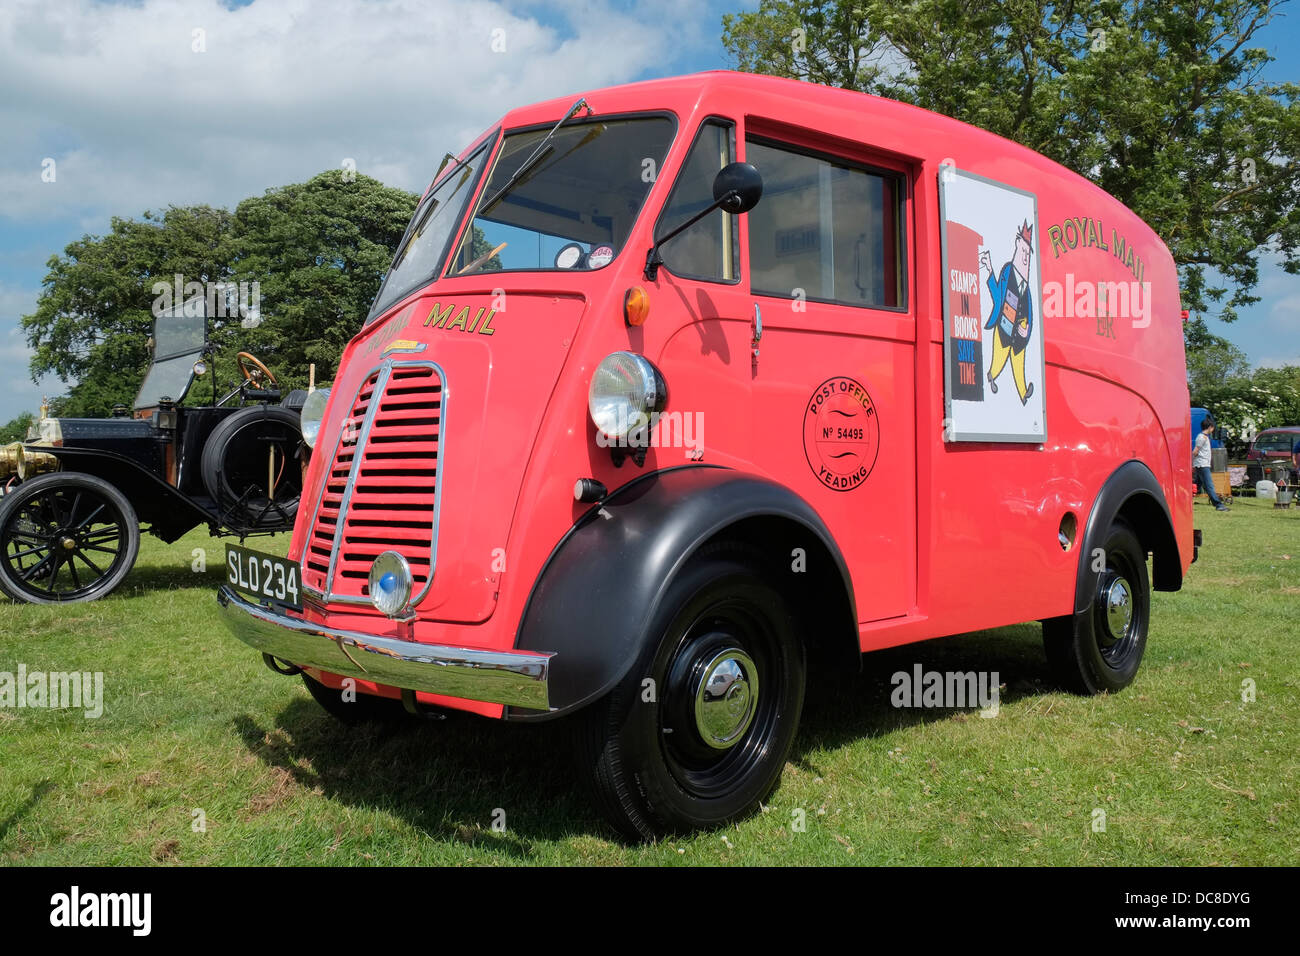 A Royal Mail Morris J type van at the Swaton Vintage Day, Thorpe Latimer, Lincolnshire, England. - Stock Image